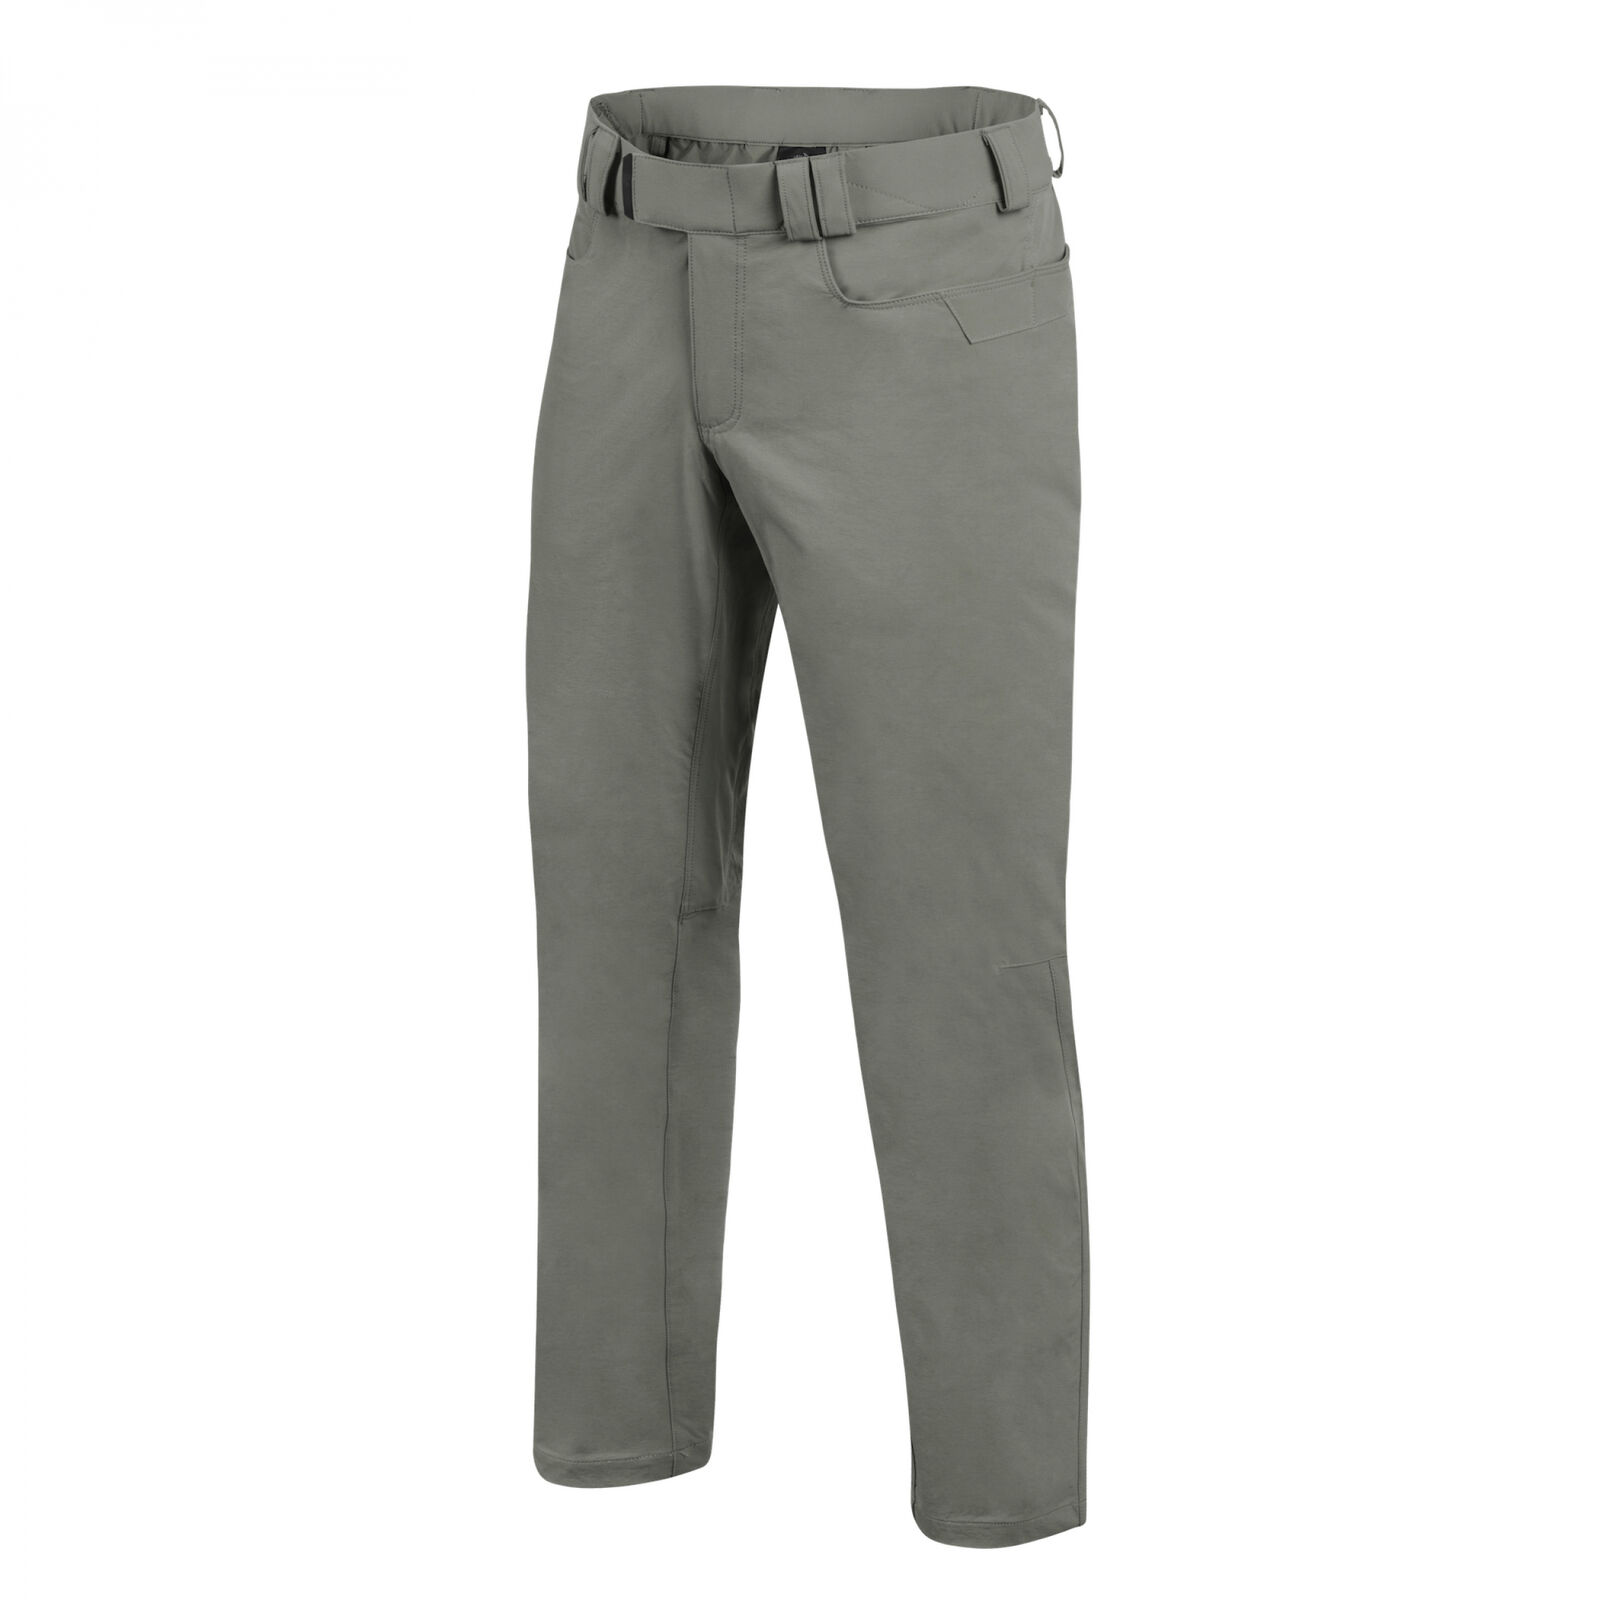 Helikon-Tex CoGrün Tactical Pants -VersaStretch- Olive Drab